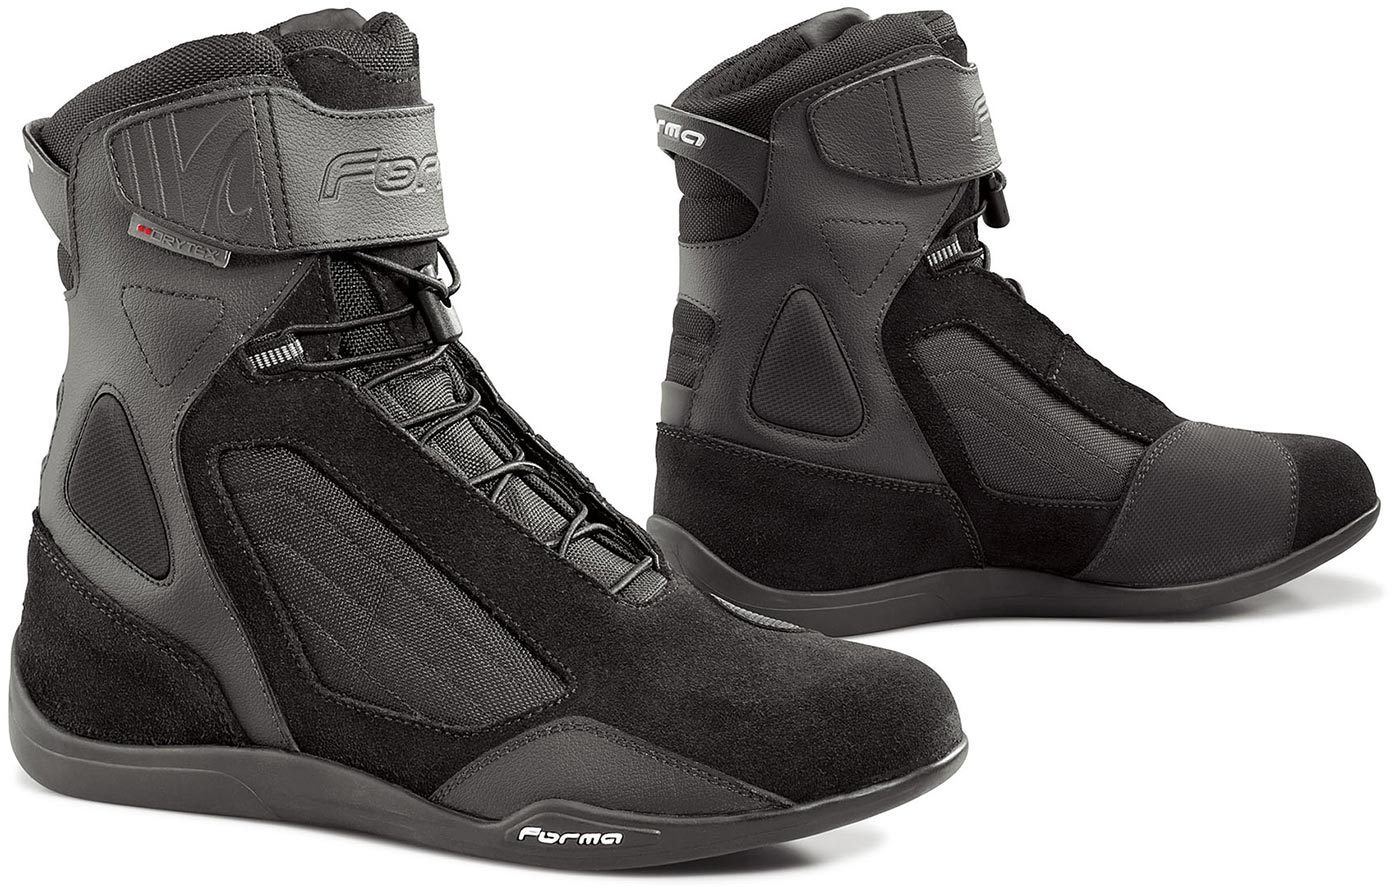 29caac430 Forma Twister Waterproof Motorcycle Boots - buy cheap ▷ FC-Moto